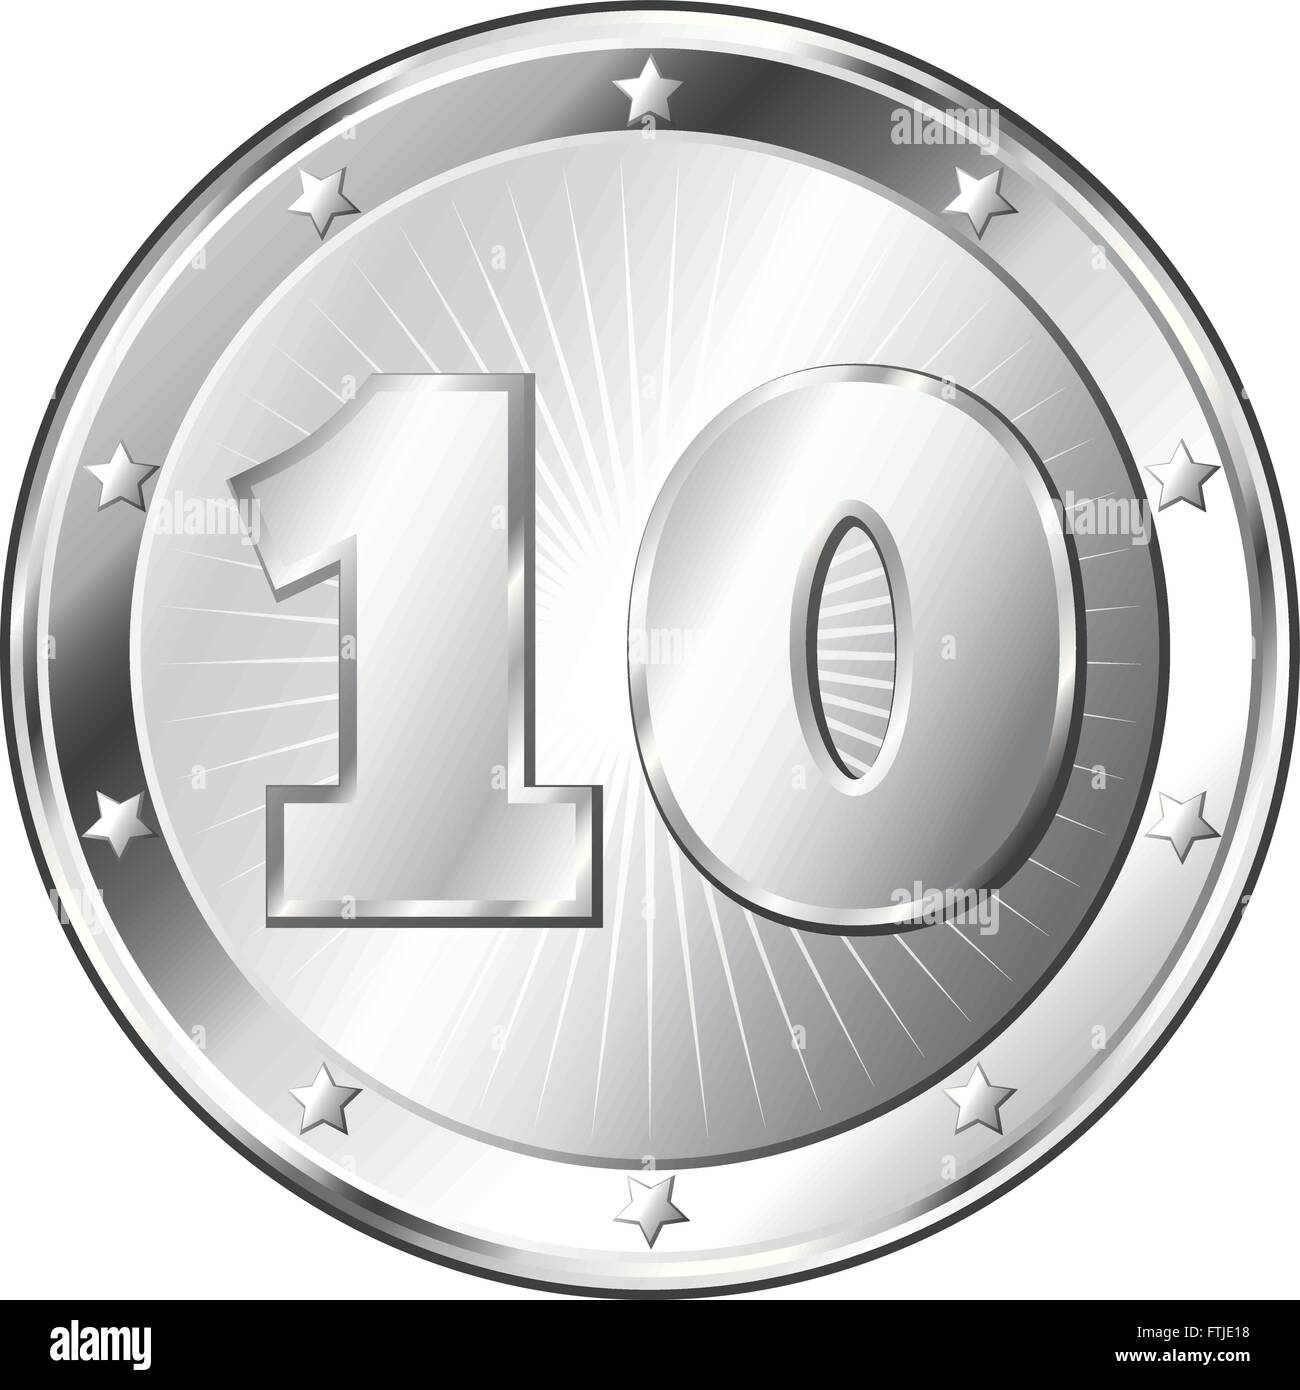 Round circle shaped metal badge / seal of approval in silver look and the number ten. - Stock Vector